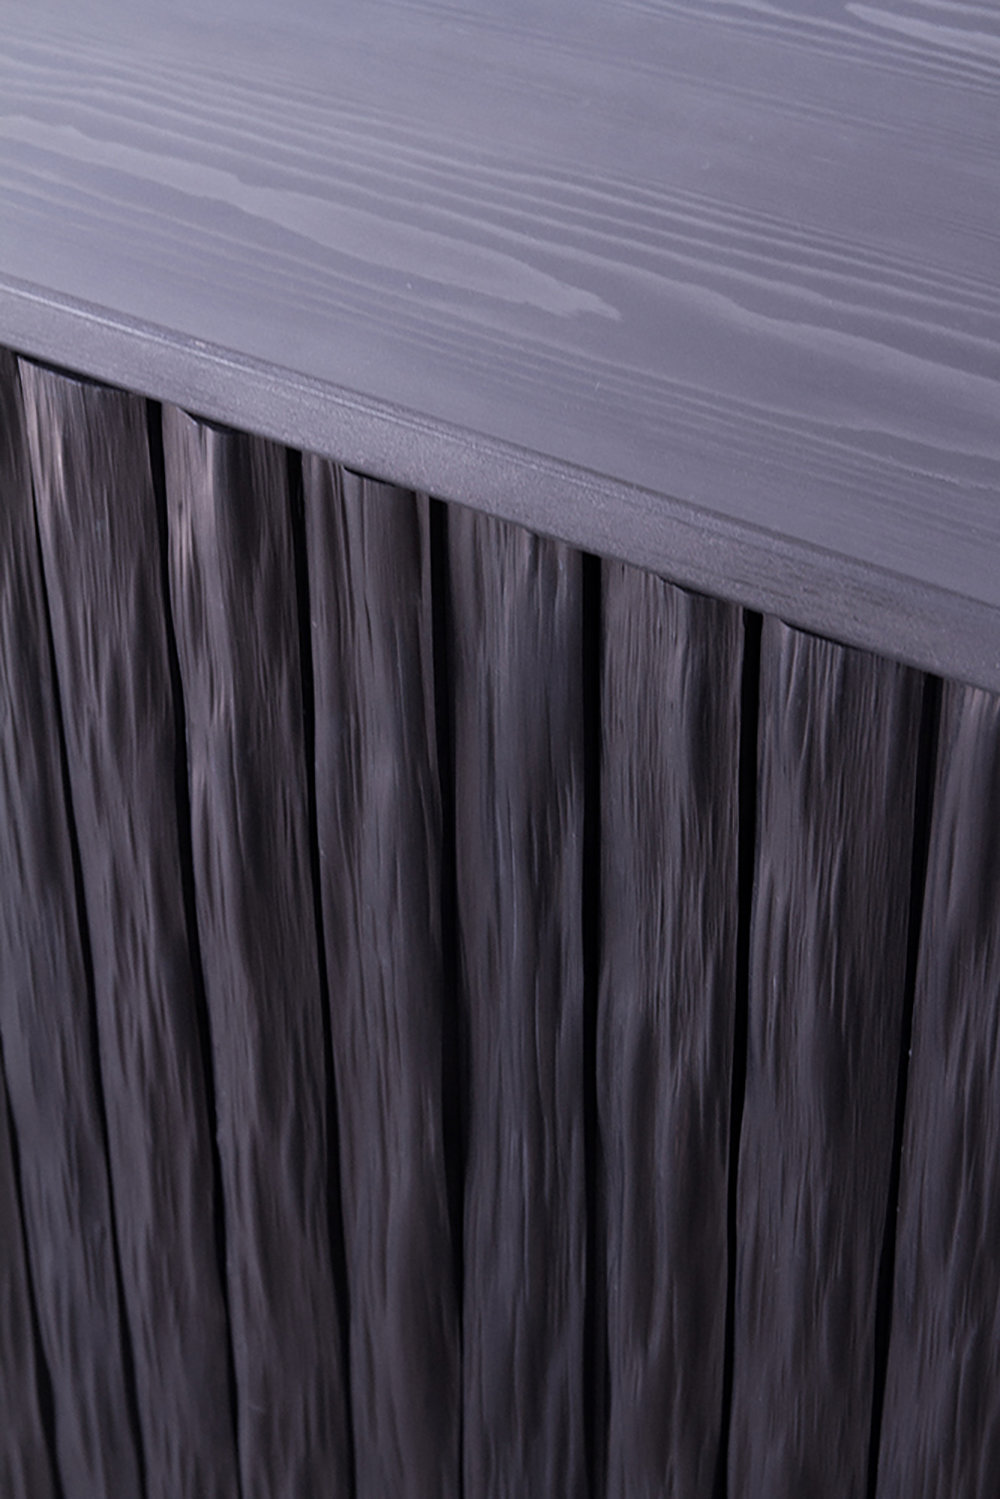 Detail of sideboard in blackened Kitayama cedar.